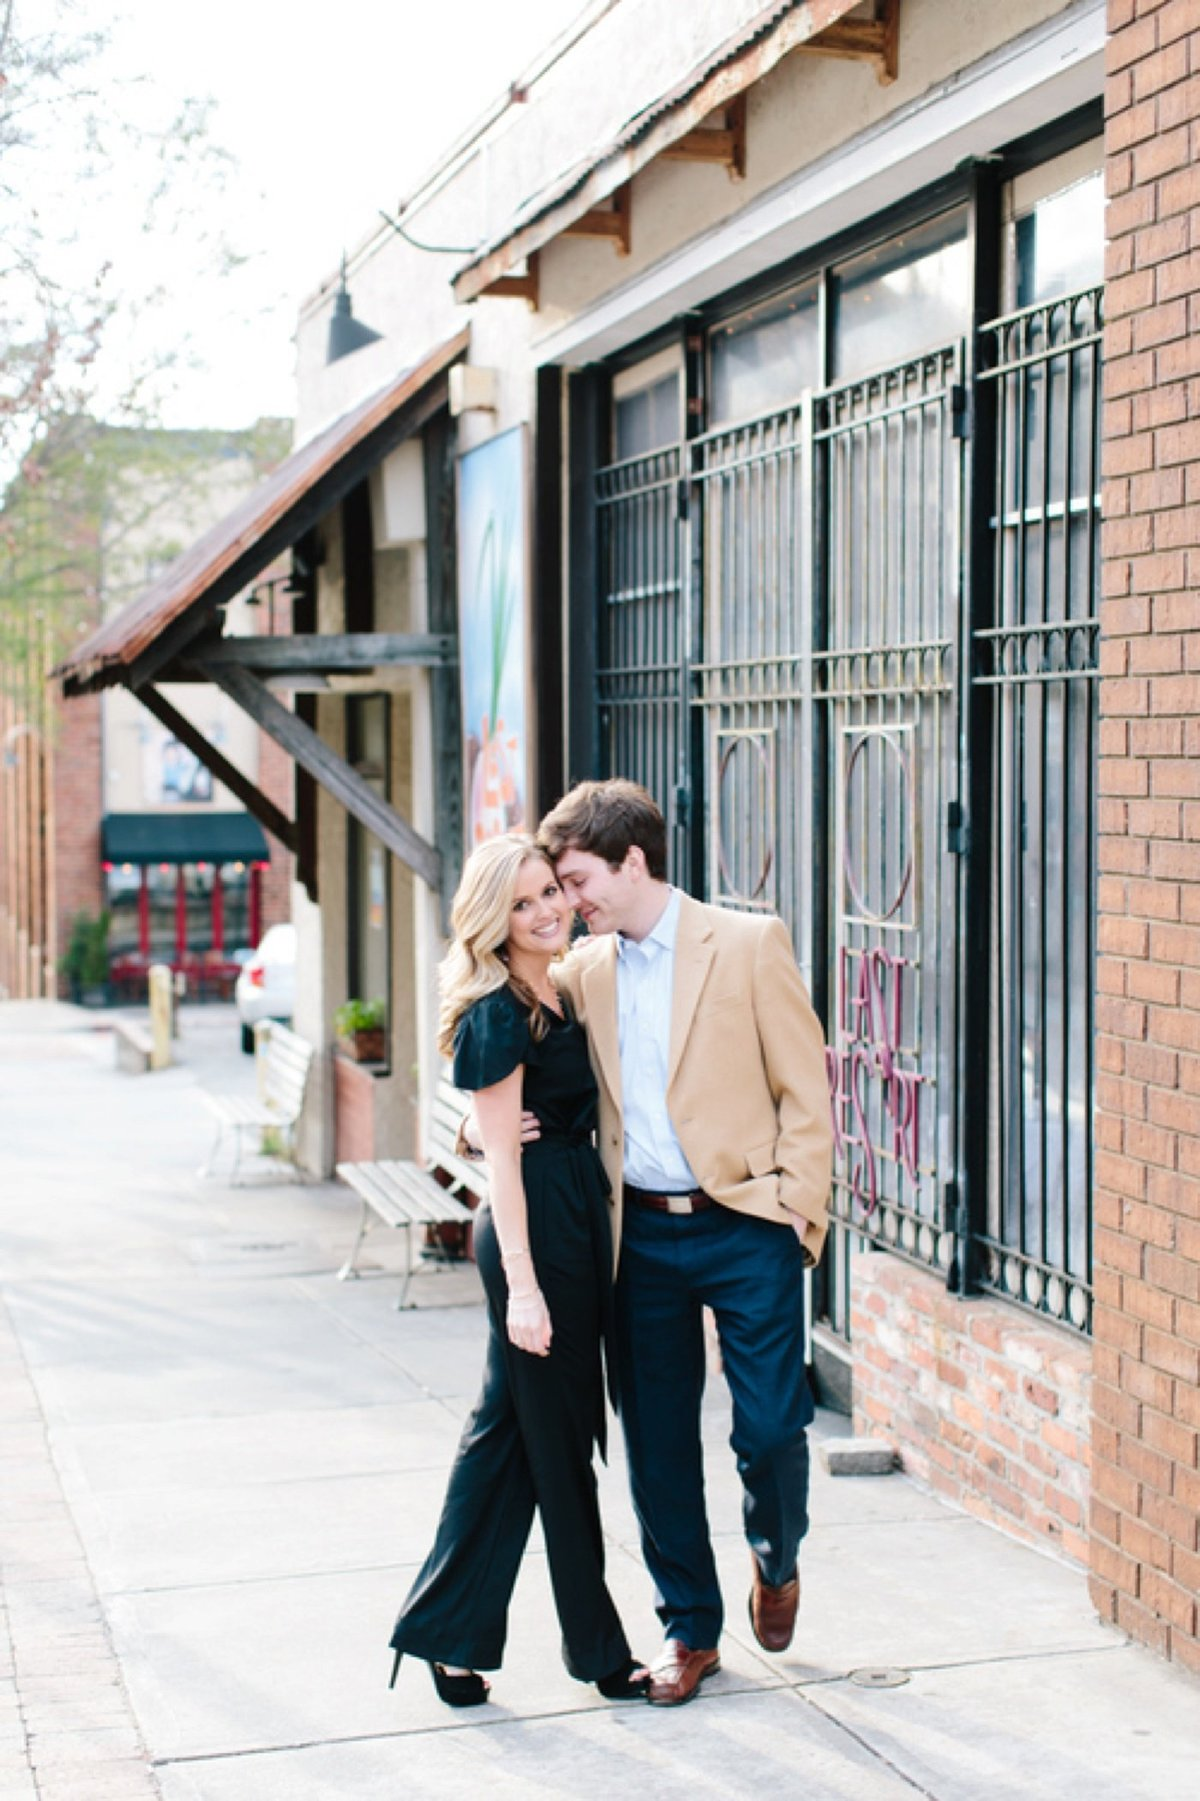 Georgia South Carolina Destination Wedding Photographer_0044